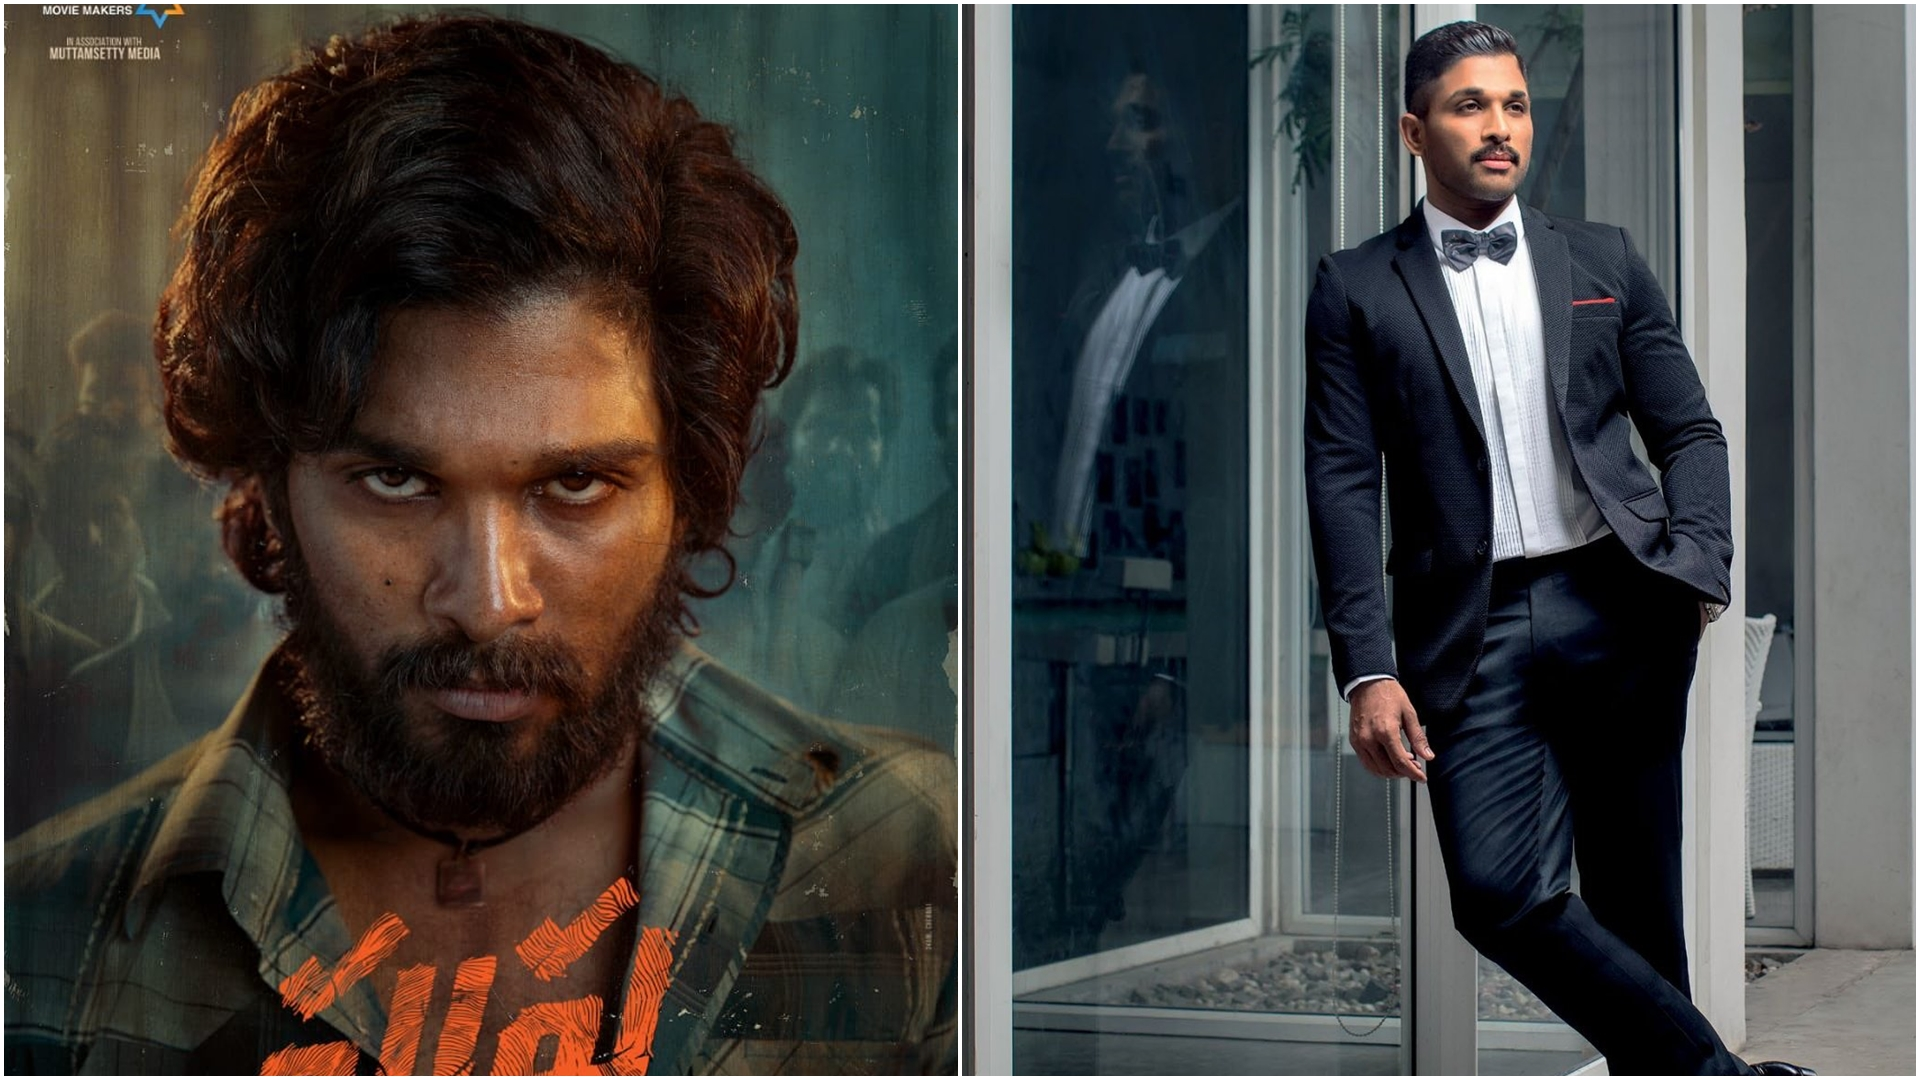 'Pushpa' to be released in 2 parts- Allu Arjun proves he is the stylish actor ever!